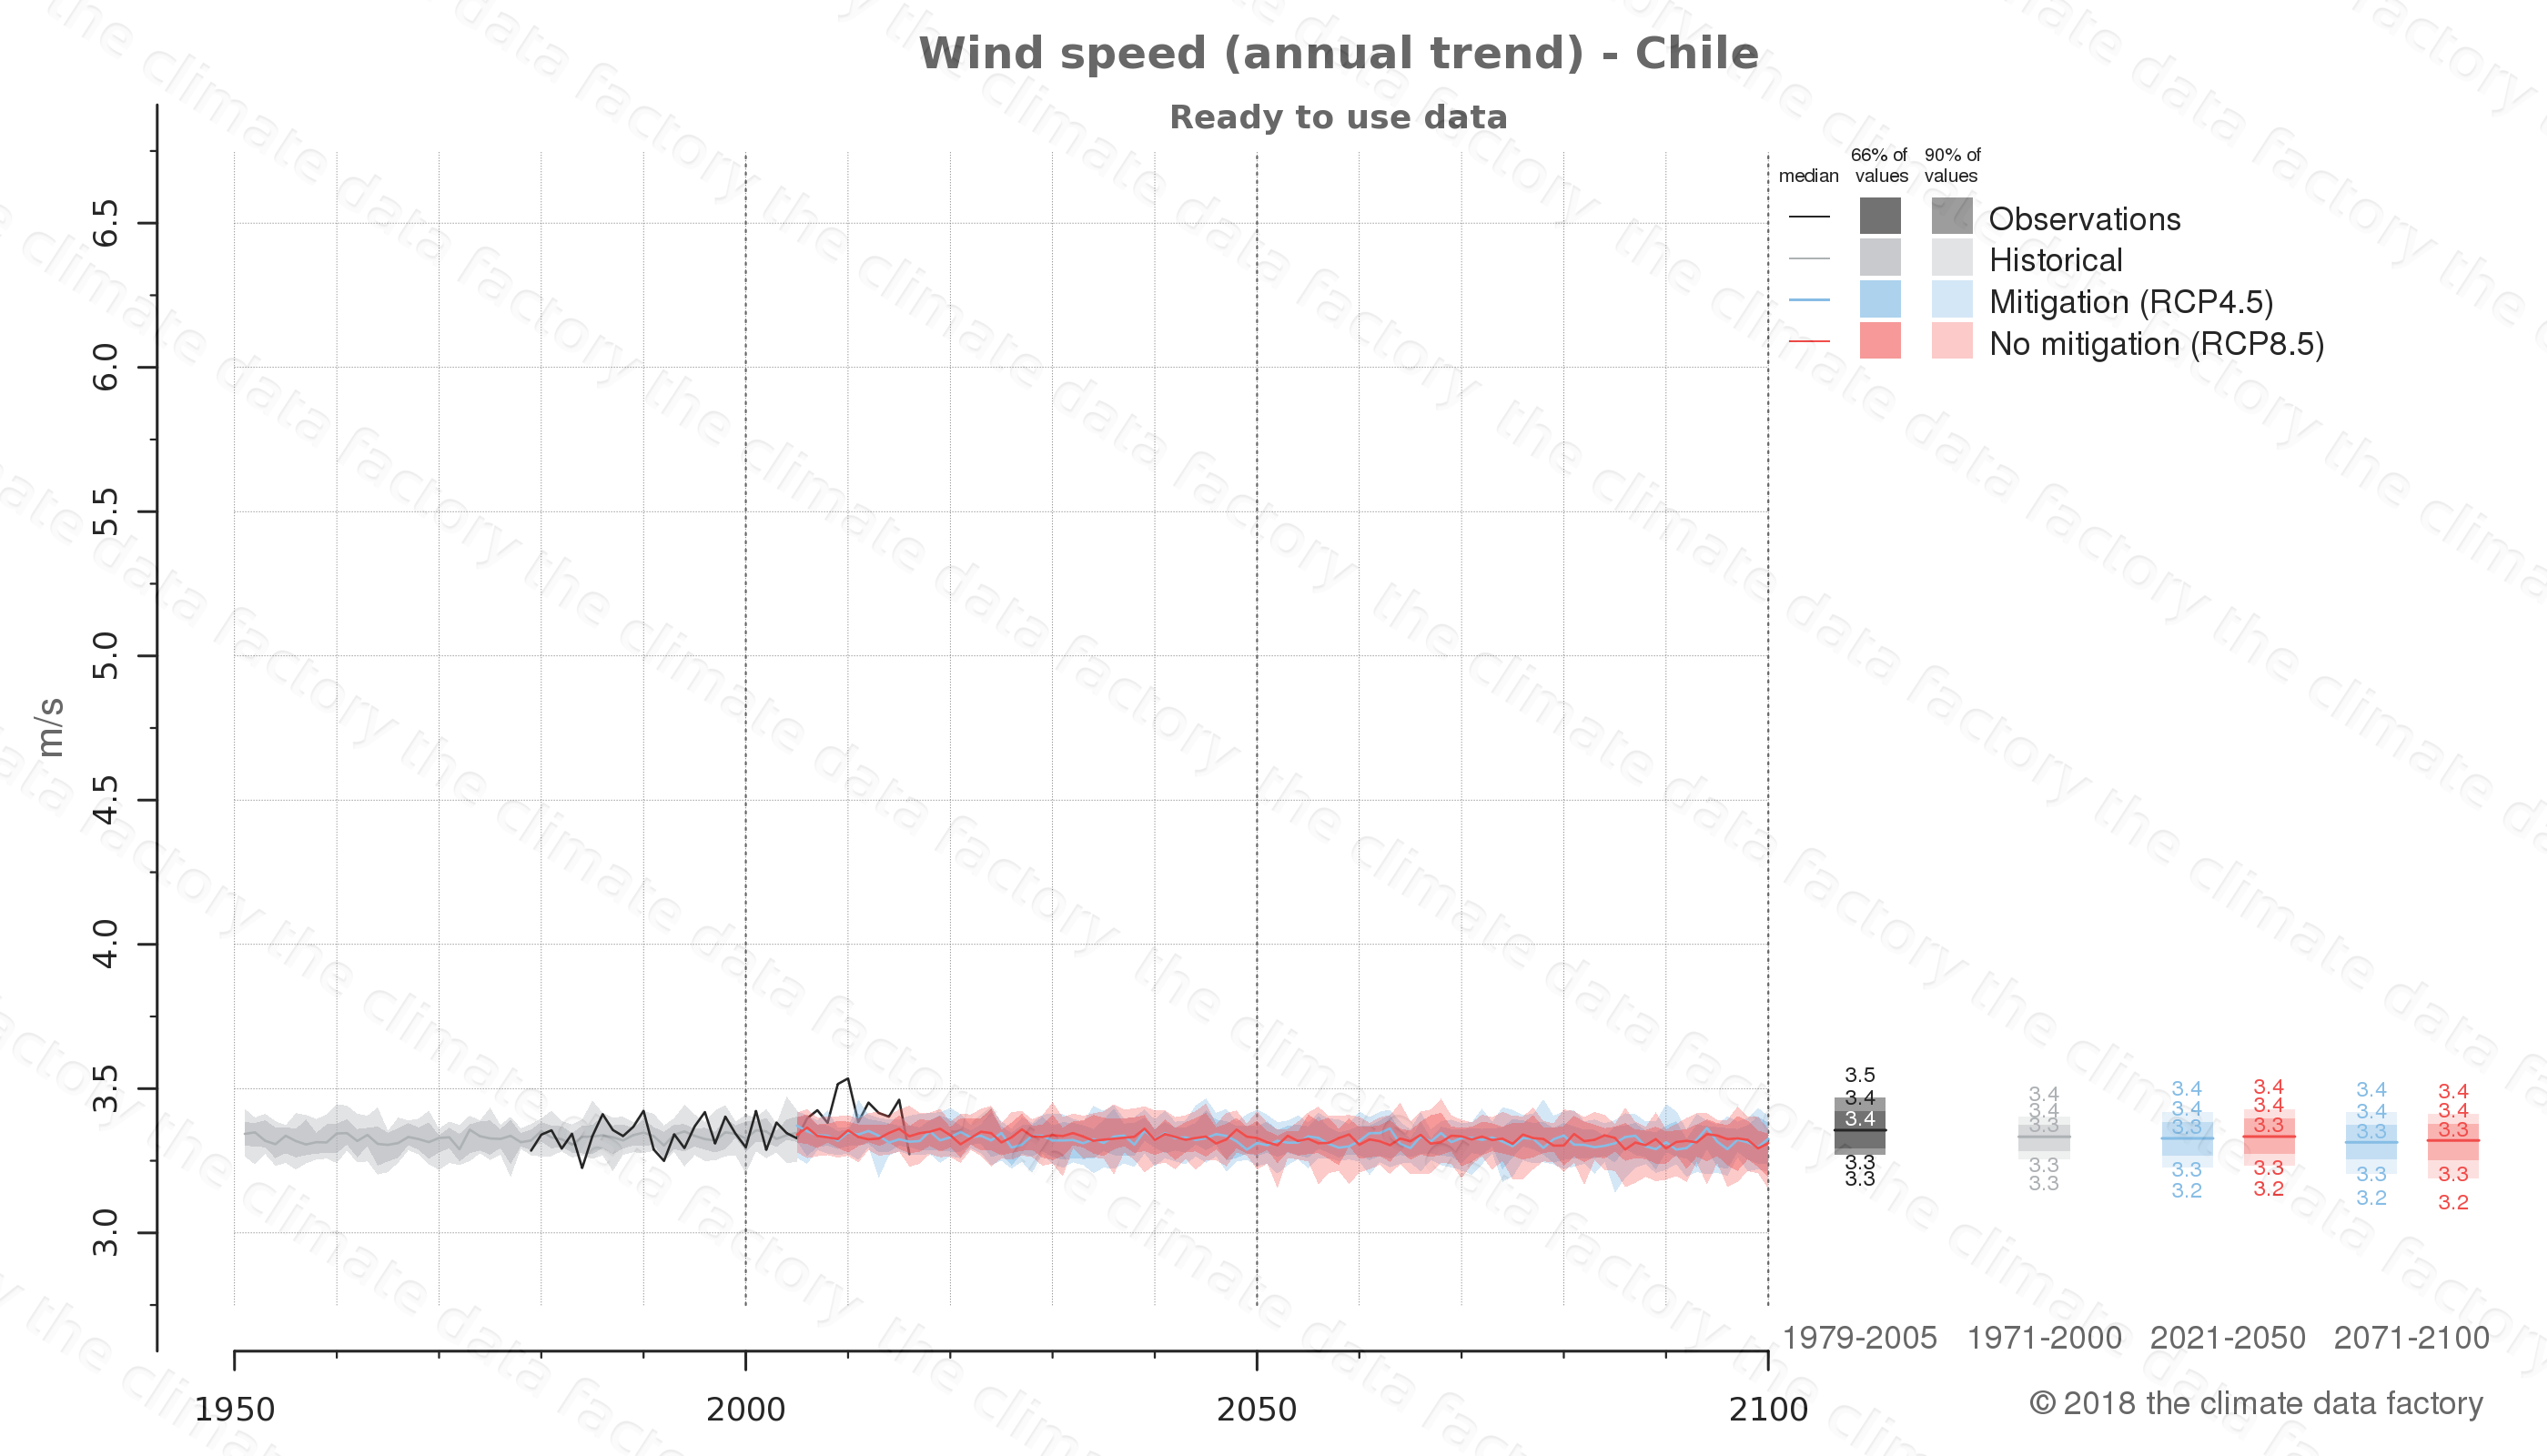 climate change data policy adaptation climate graph country data wind speed chile south-america